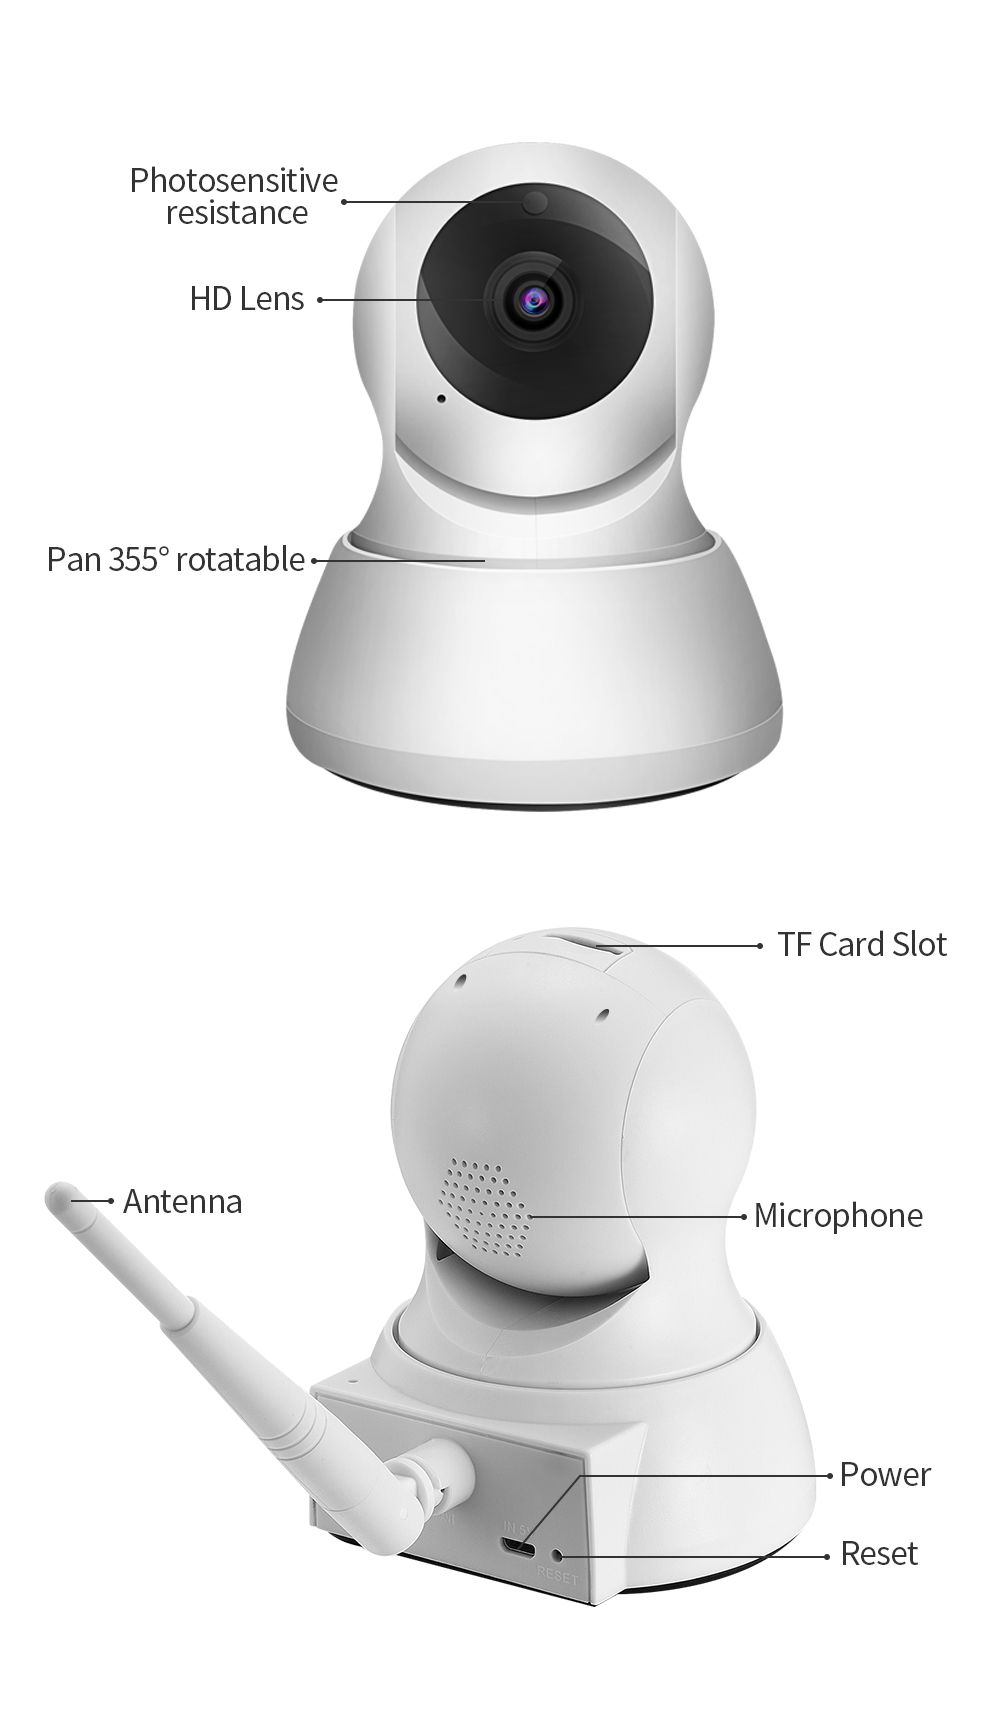 HTB1Y4bNiRsmBKNjSZFFq6AT9VXaB SDETER Home Security IP Camera Wi-Fi 1080P 720P Wireless Network Camera CCTV Camera Surveillance P2P Night Vision Baby Monitor